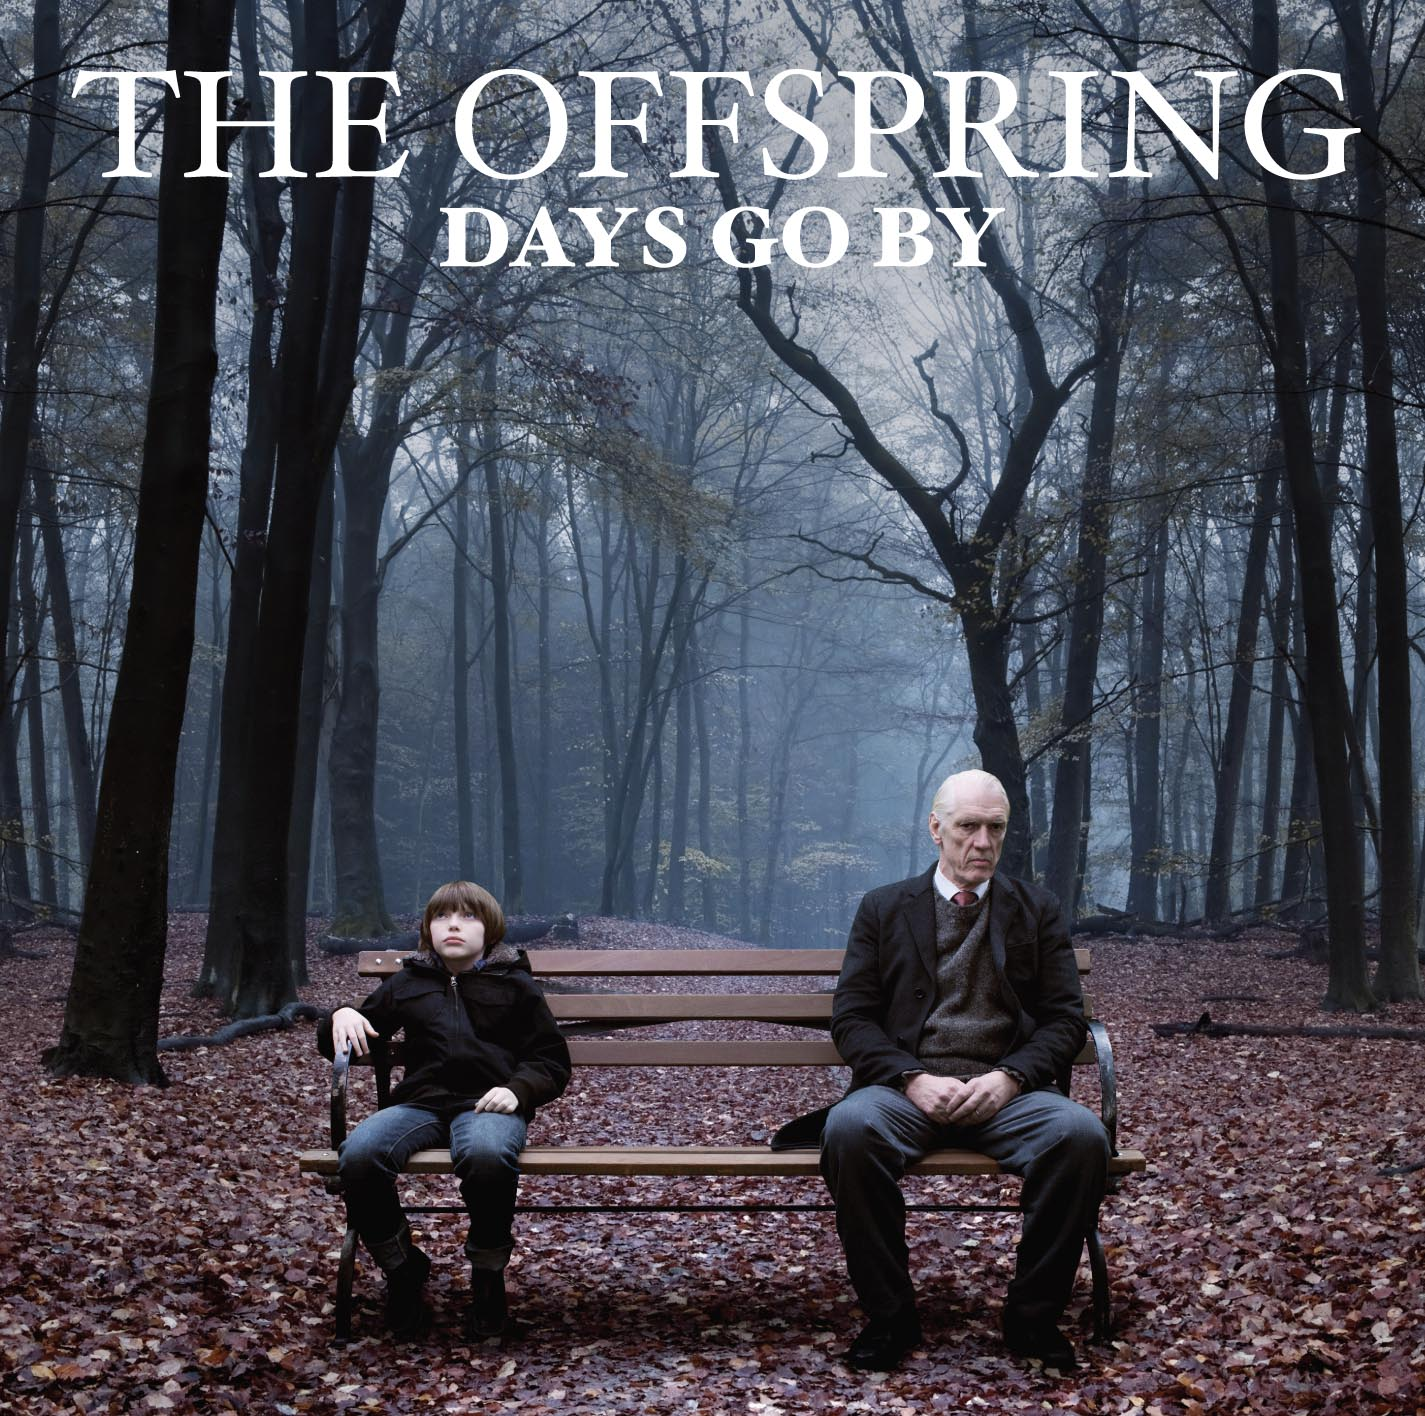 AMERICANA OFFSPRING BAIXAR CD THE COMPLETO